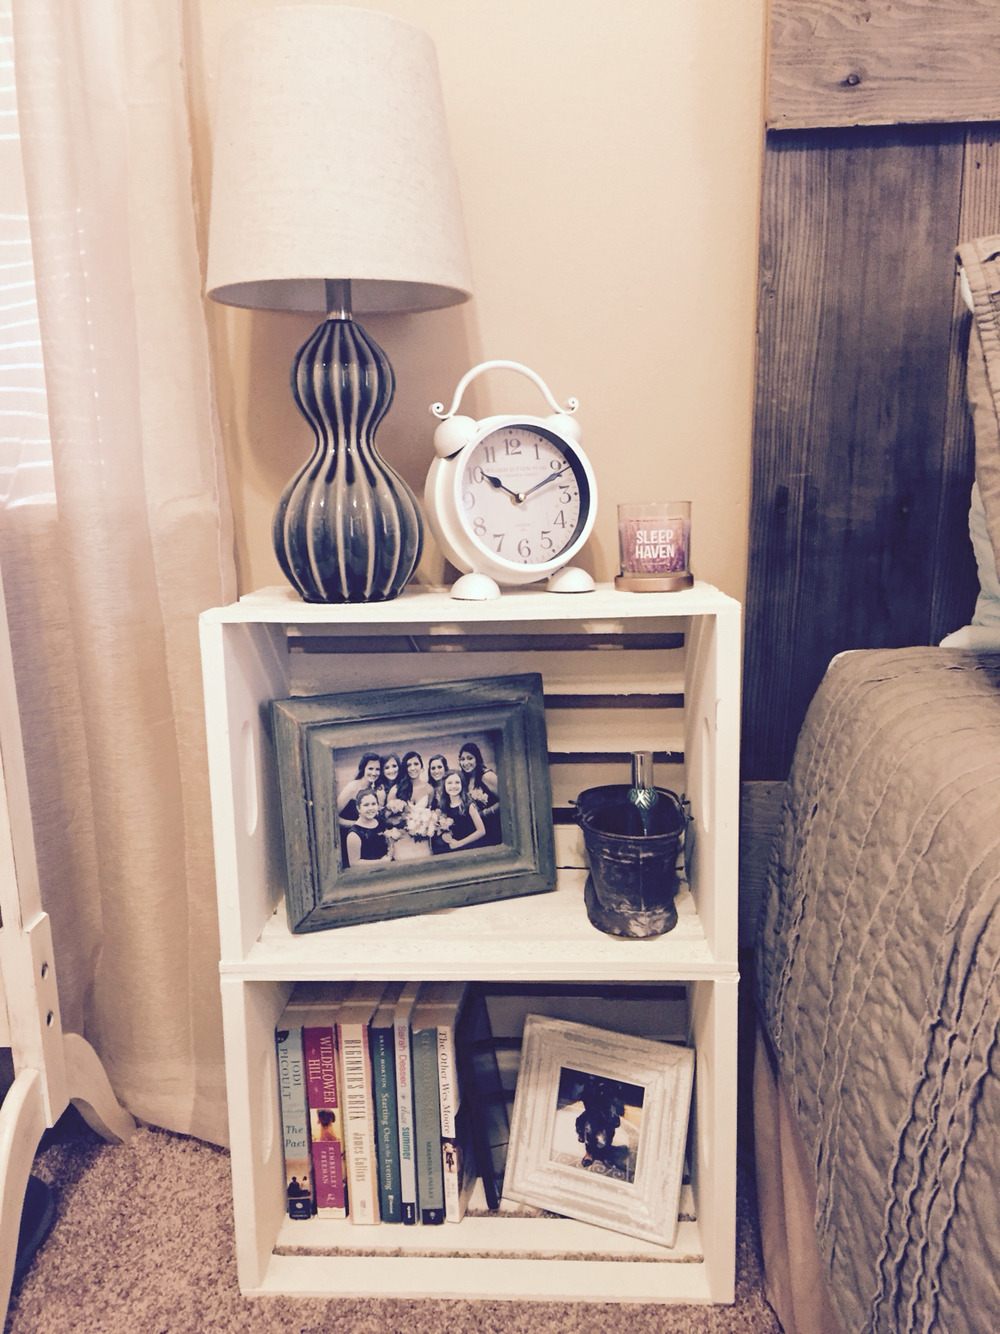 22 nightstand ideas for your bedroom - best of diy ideas Diy Side Table Ideas